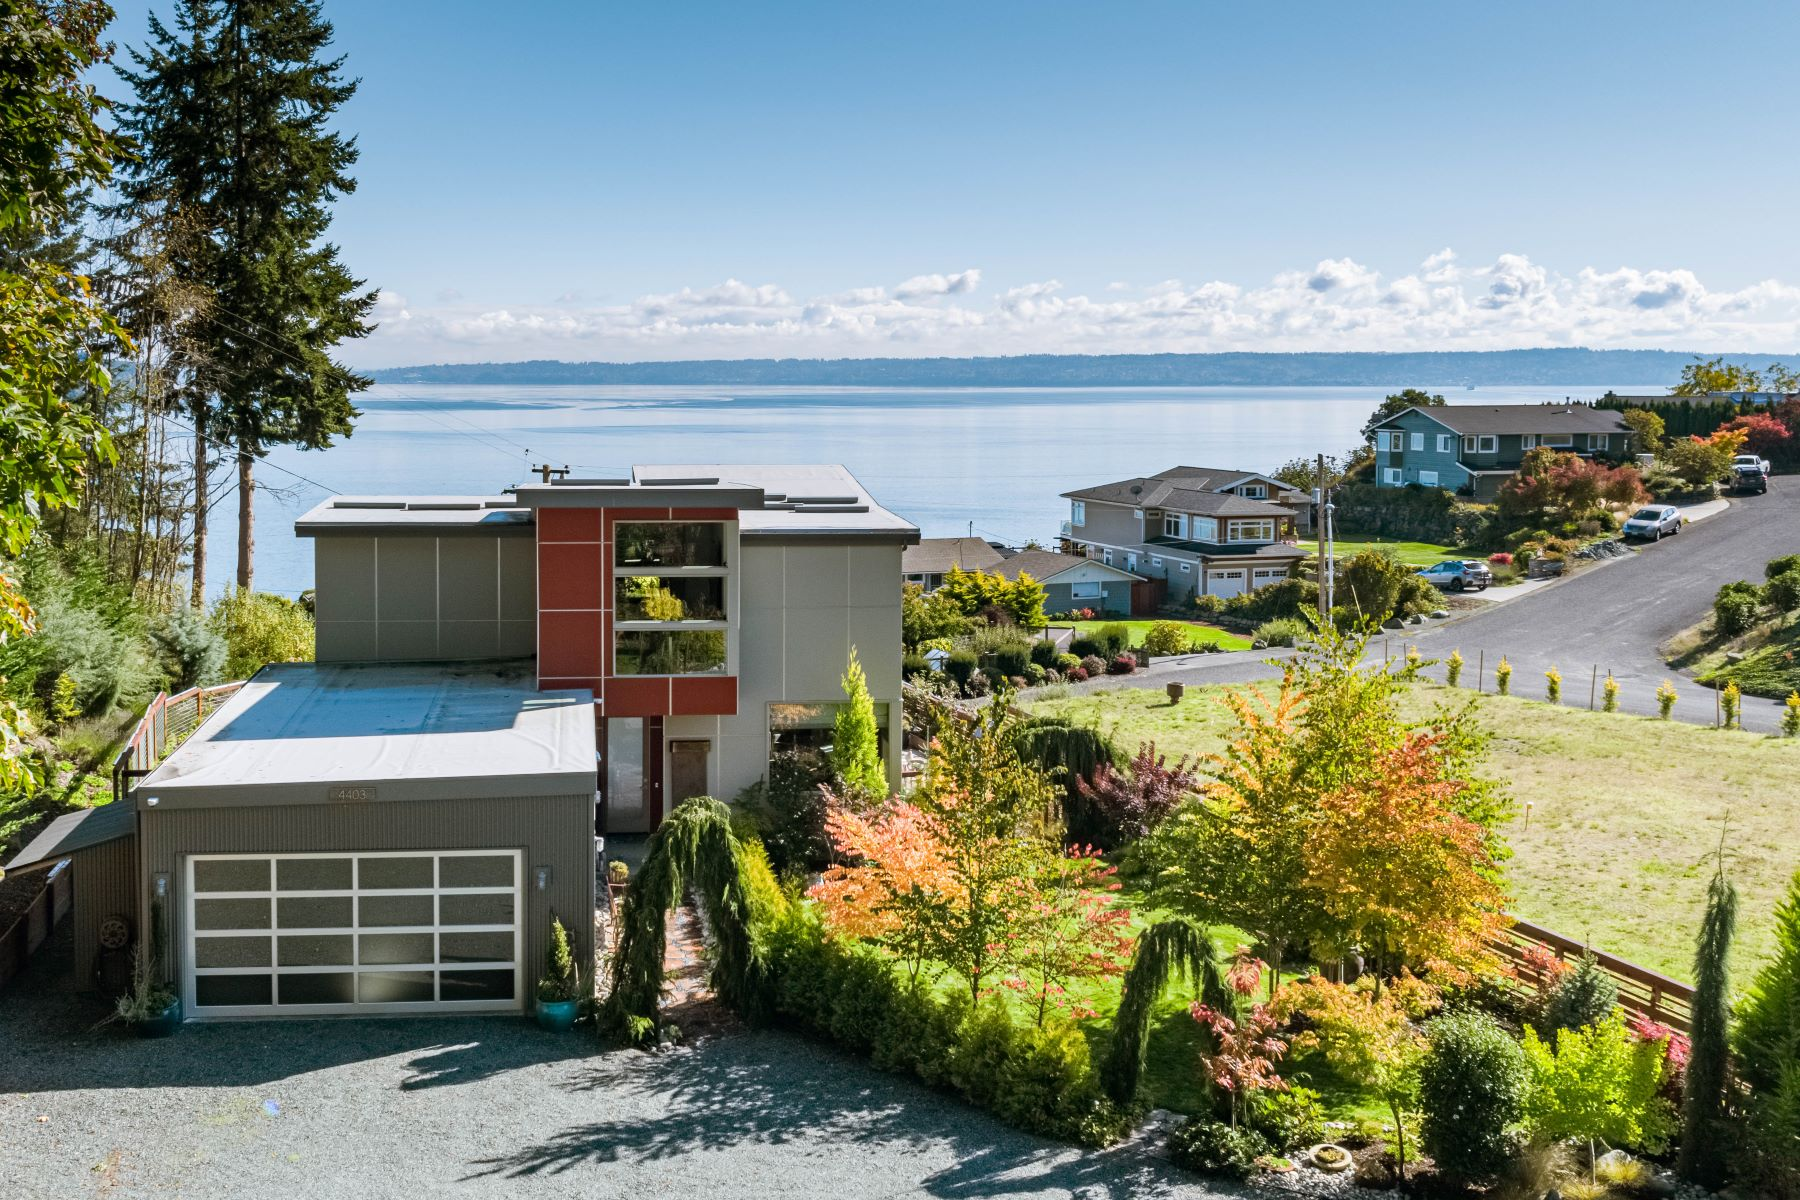 Single Family Homes for Sale at Whidbey Island Contemporary 4403 Witter Road Langley, Washington 98260 United States